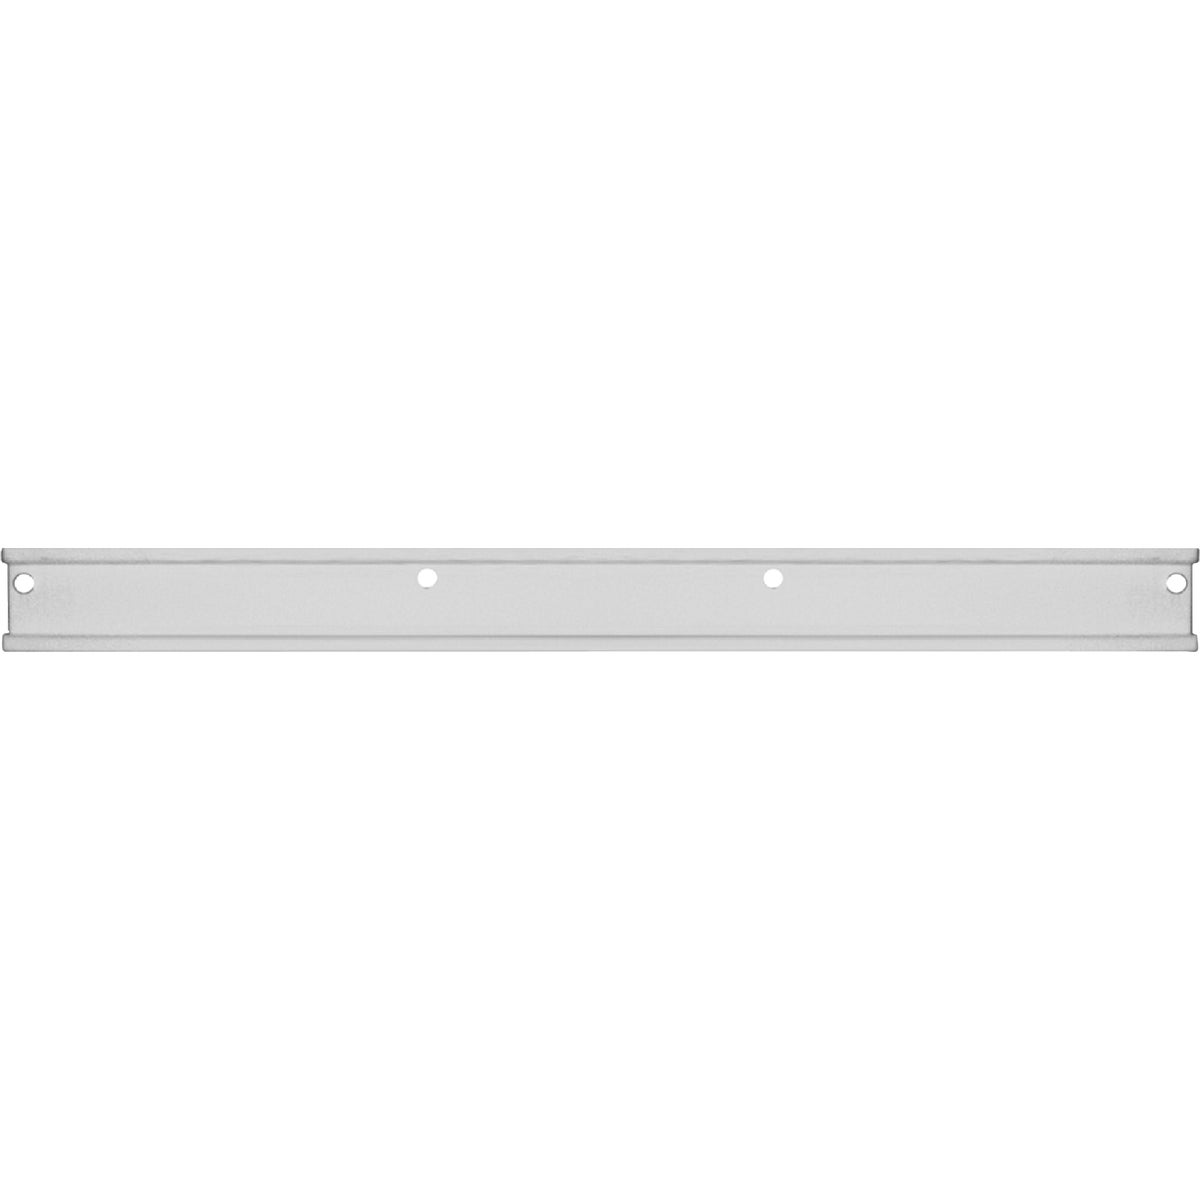 Knape & Vogt Wall Standard Horizontal Hanging Rail, 79 WH 80